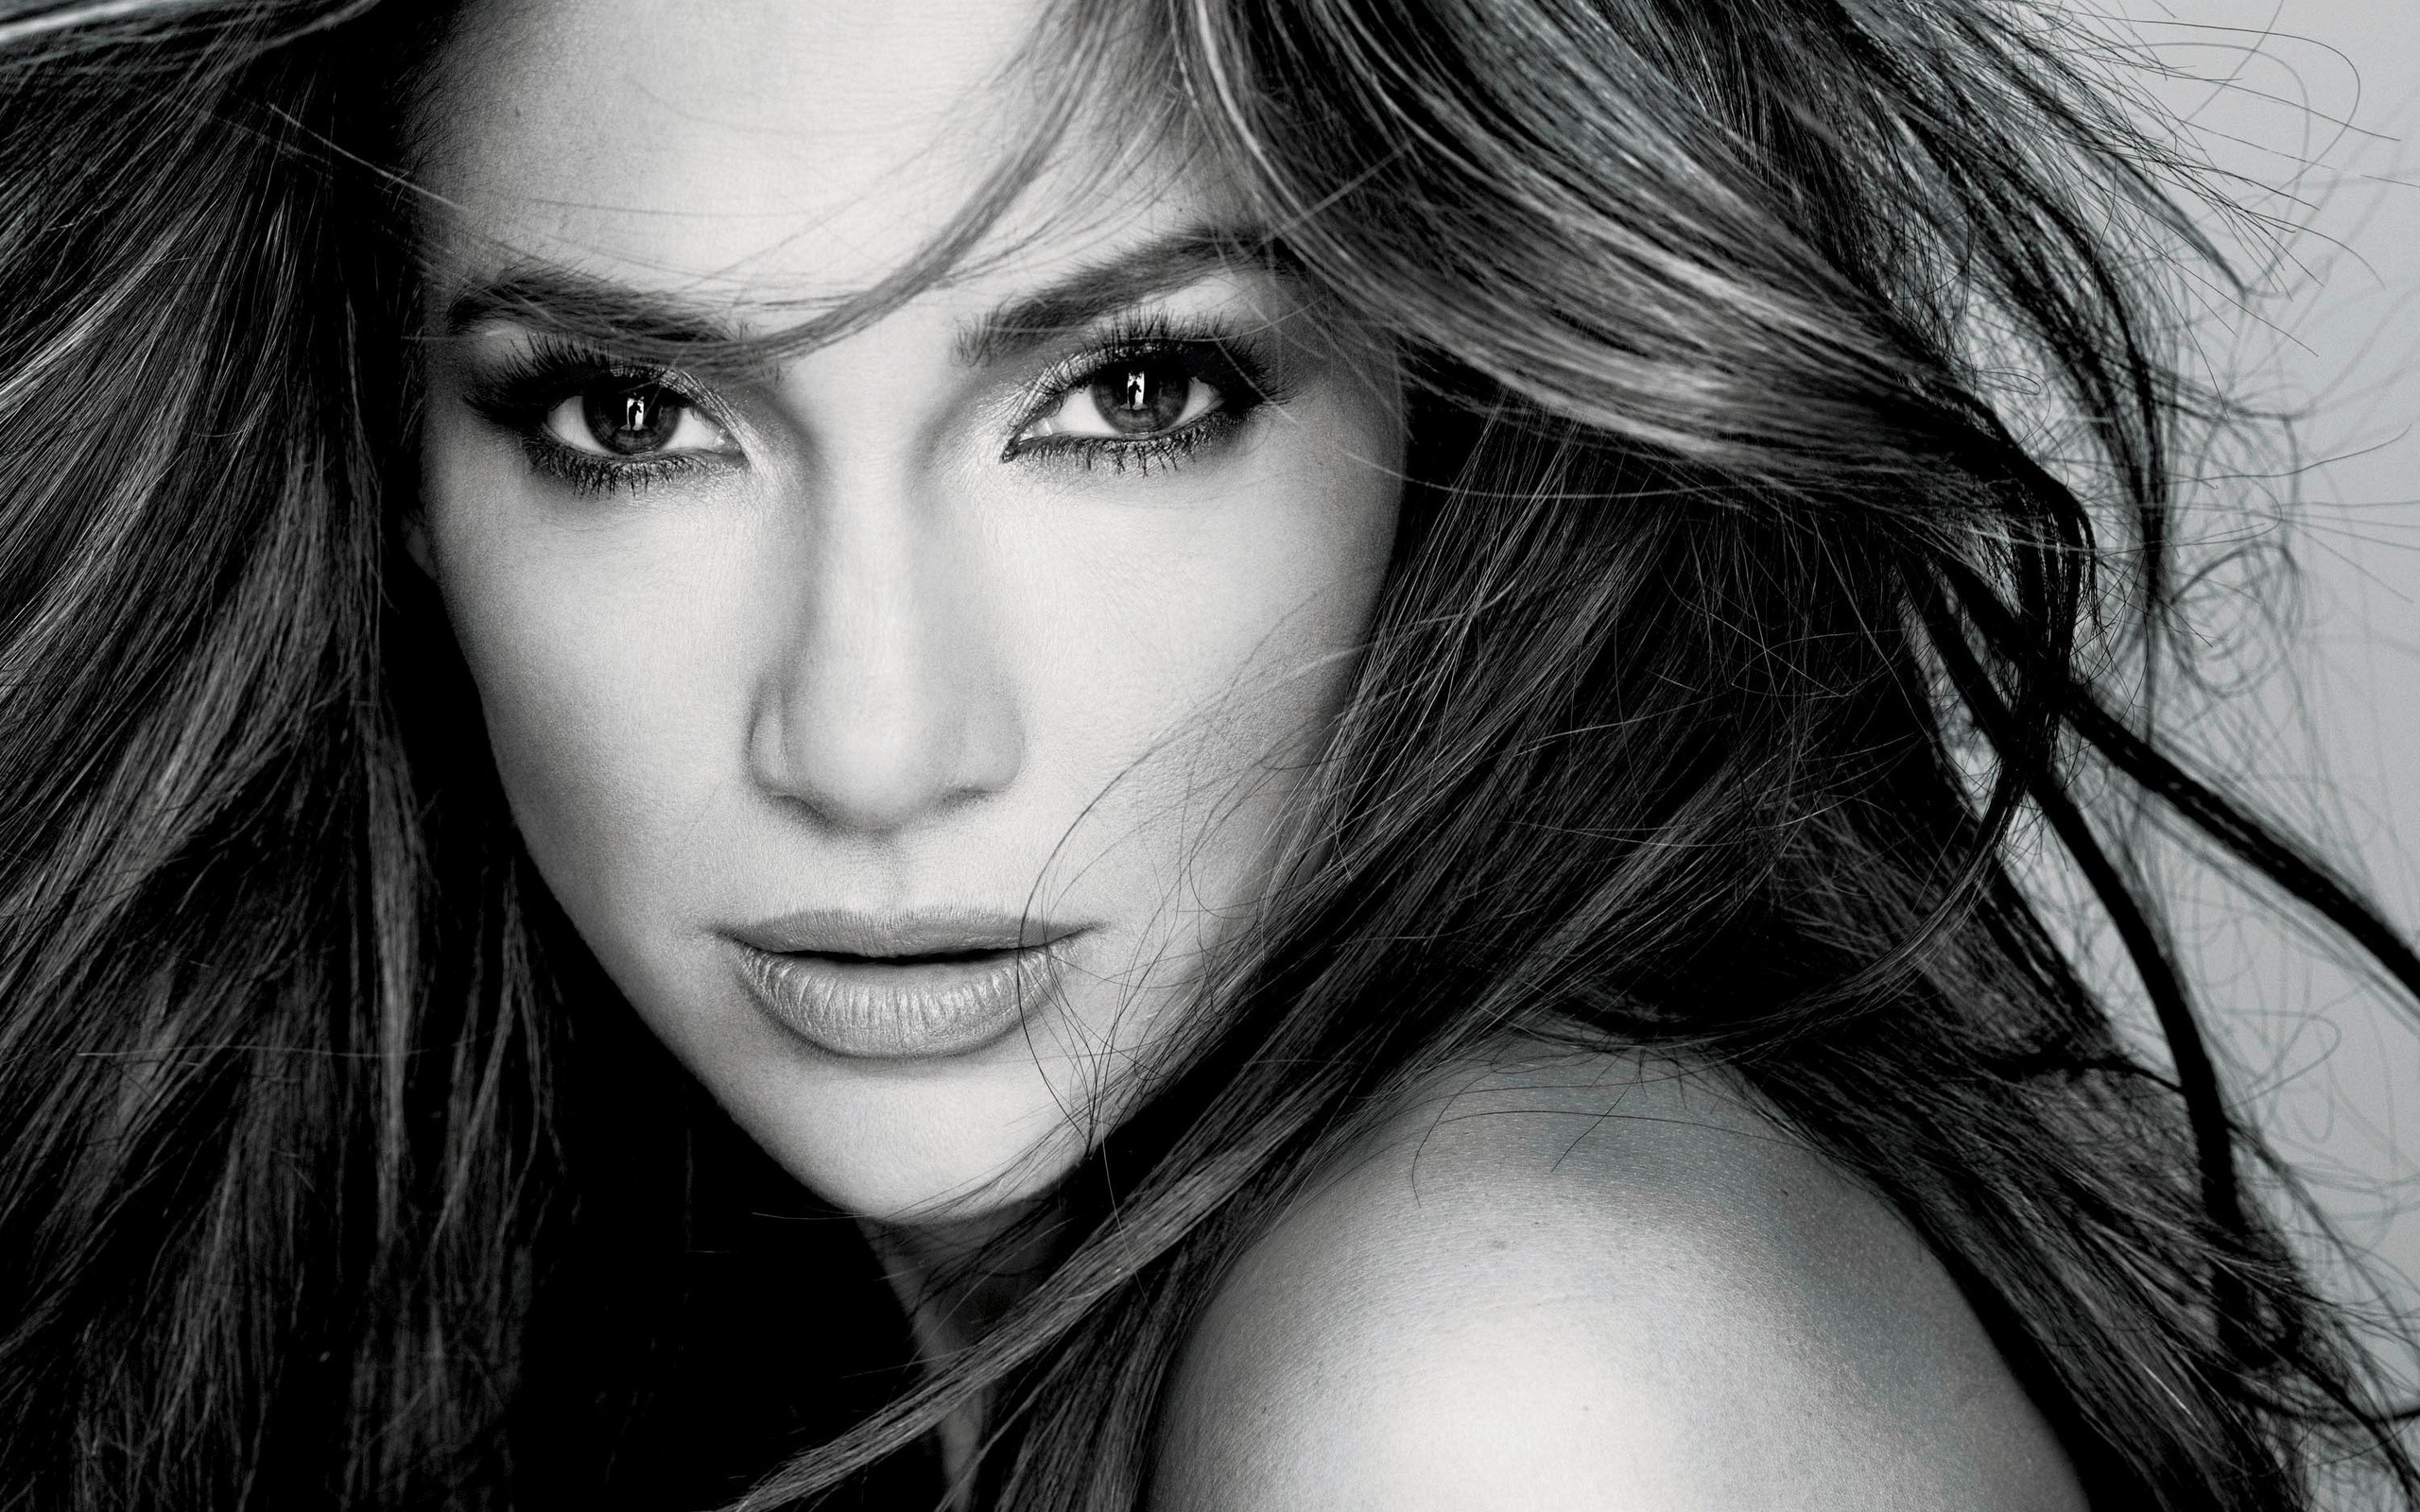 2560x1600 Face Jennifer Lopez Sabor · HD Wallpaper | Background ID:423939